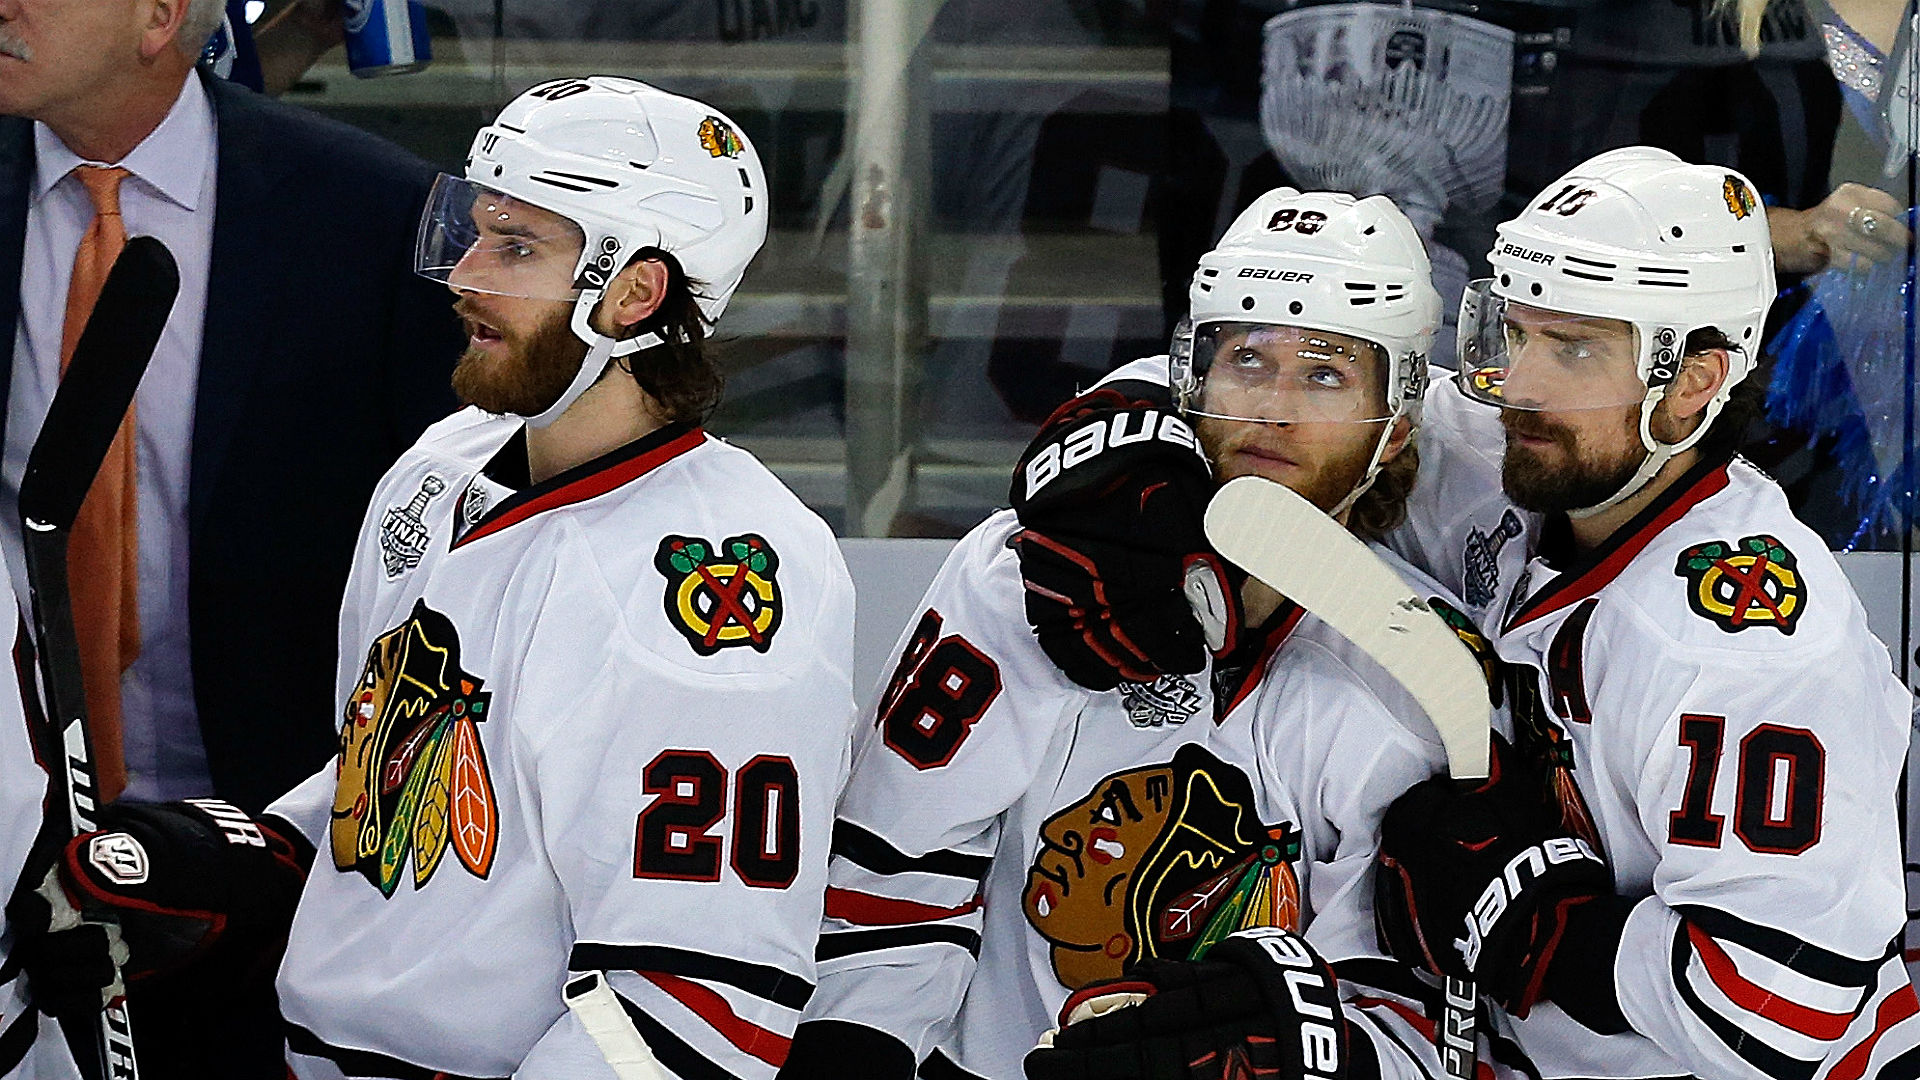 Lightning vs. Blackhawks odds and betting analysis – Chicago unusually strong in Game 6s